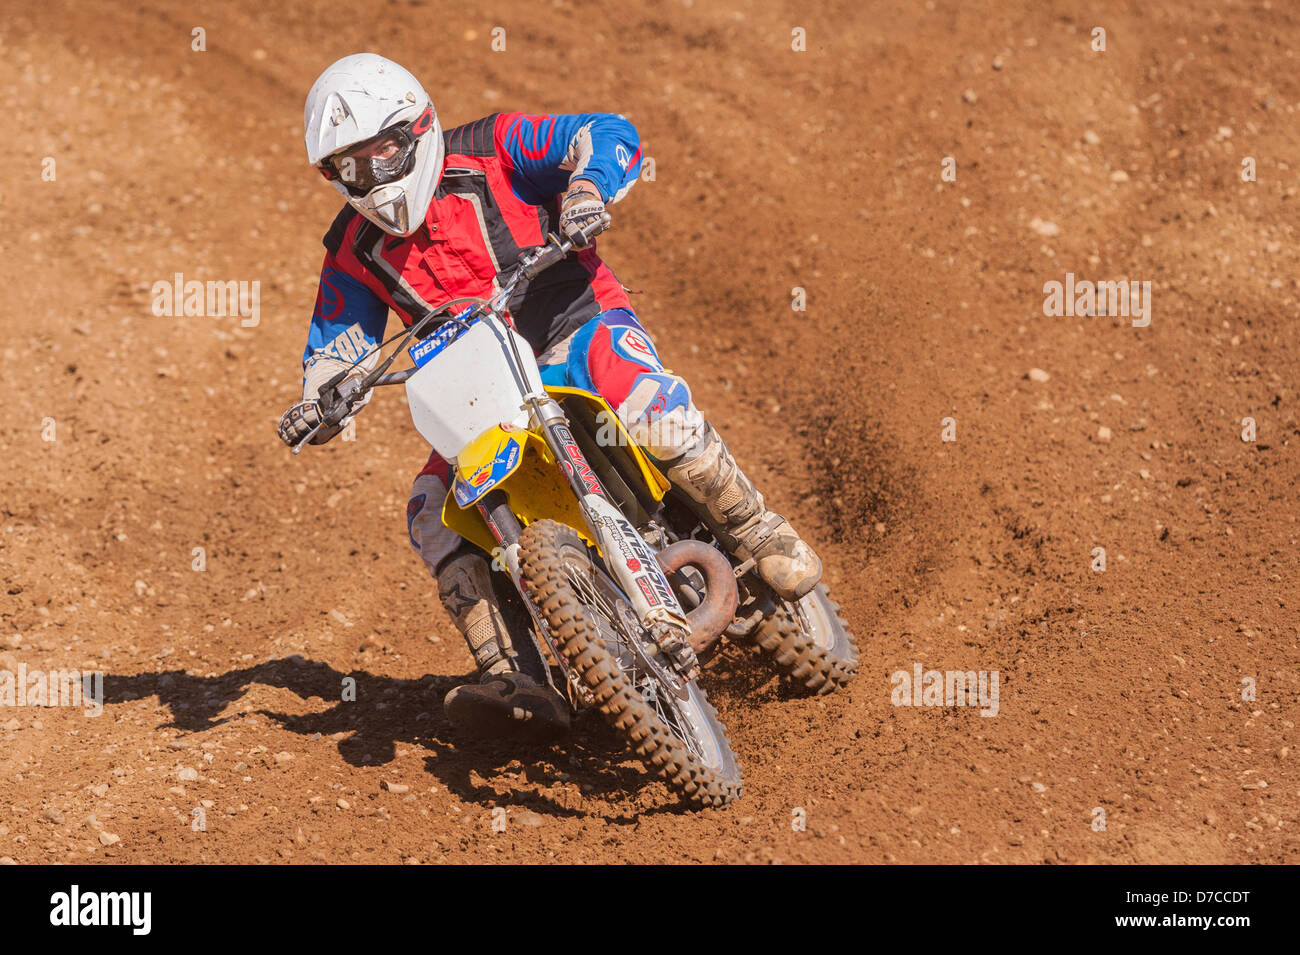 A motocross bike scrambler riding in the mud in the Uk - Stock Image